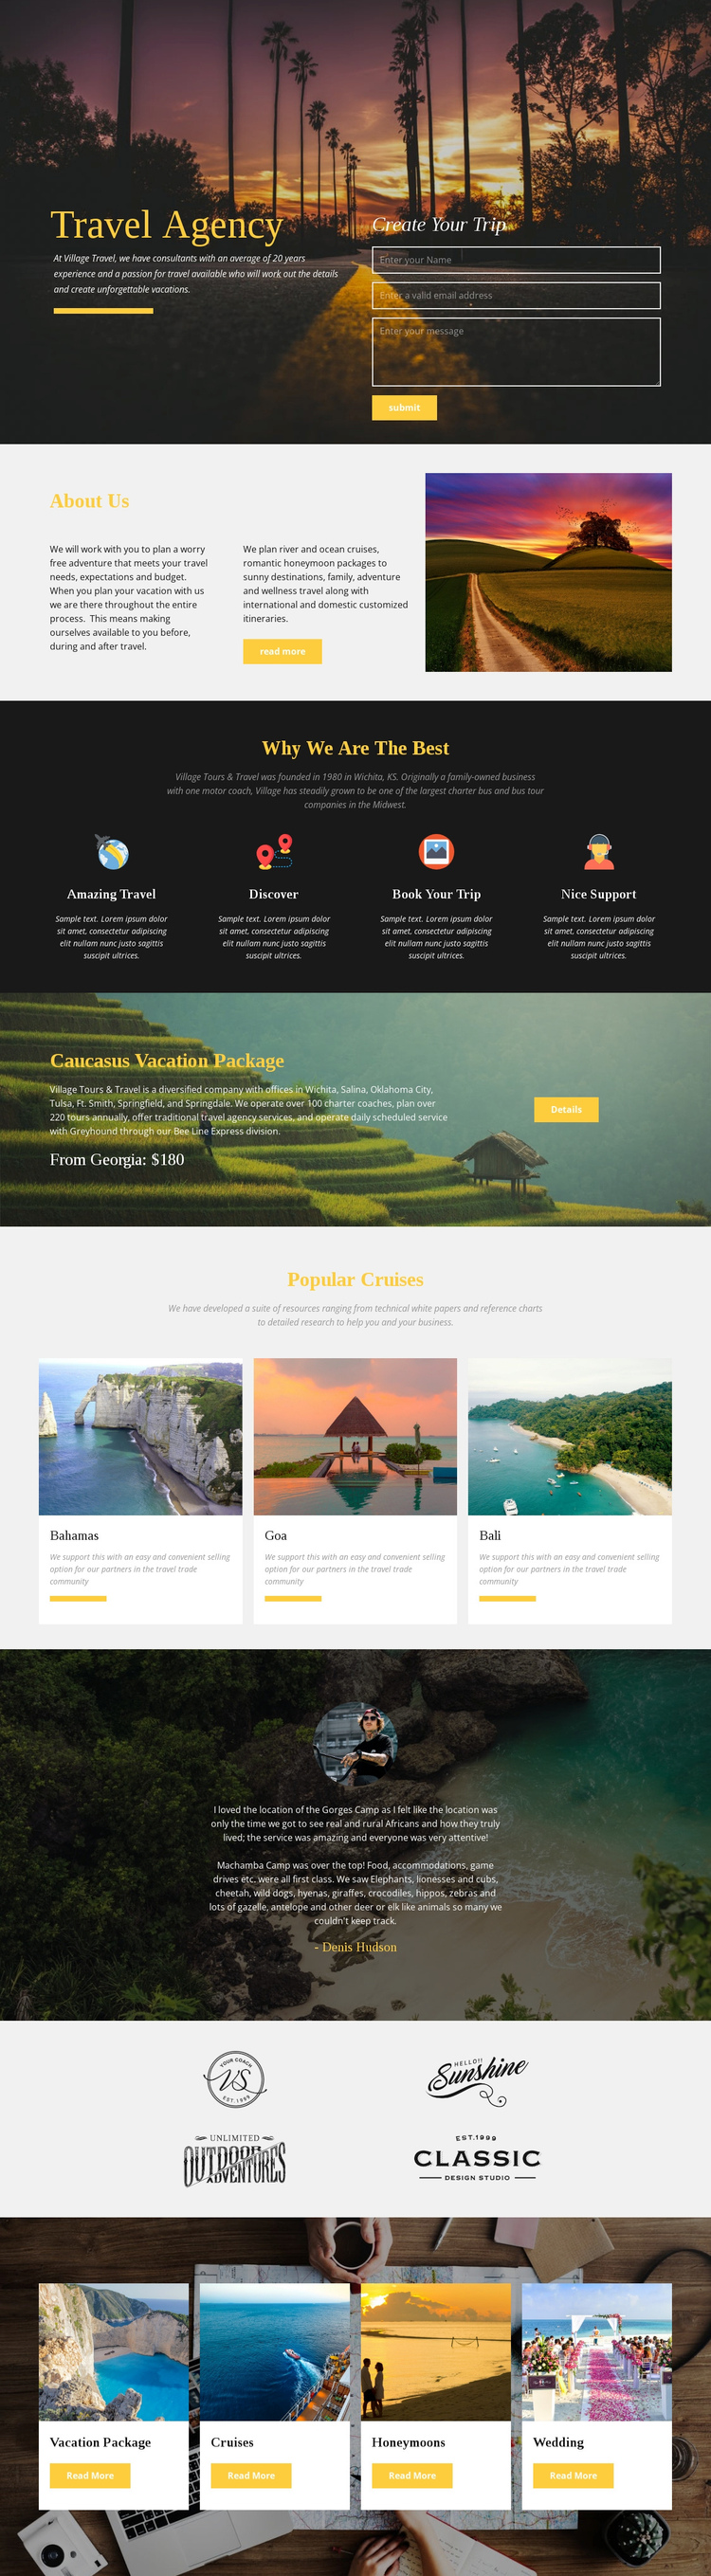 African safari tour company Website Builder Software